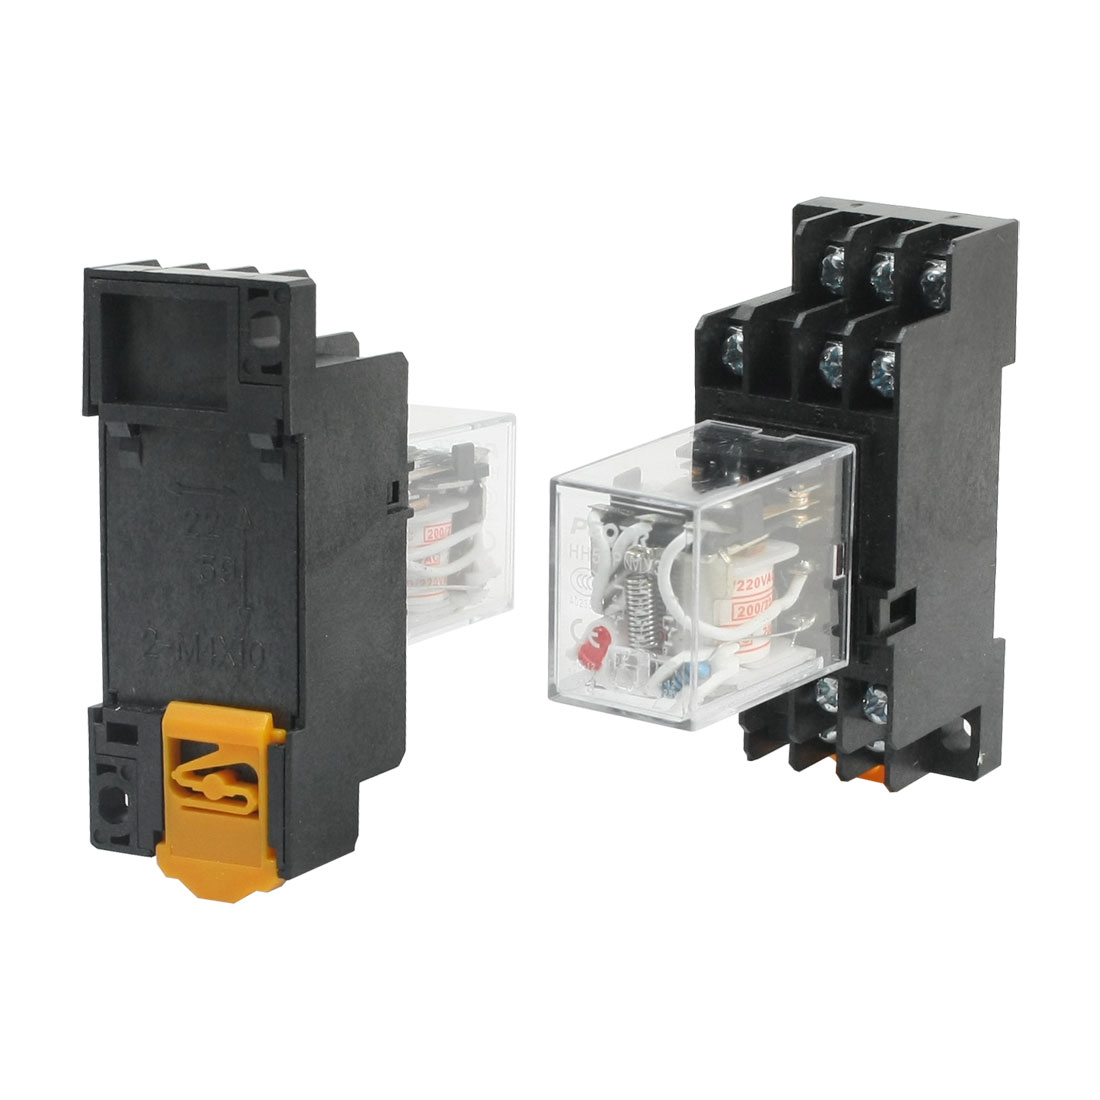 2 Pcs HH53P AC 200V Coil Voltage Red Indicator Light 11-Pin 3PDT 3NO 3NC Plug-in General Purpose Power Relay w 35mm DIN Rail Mount Socket